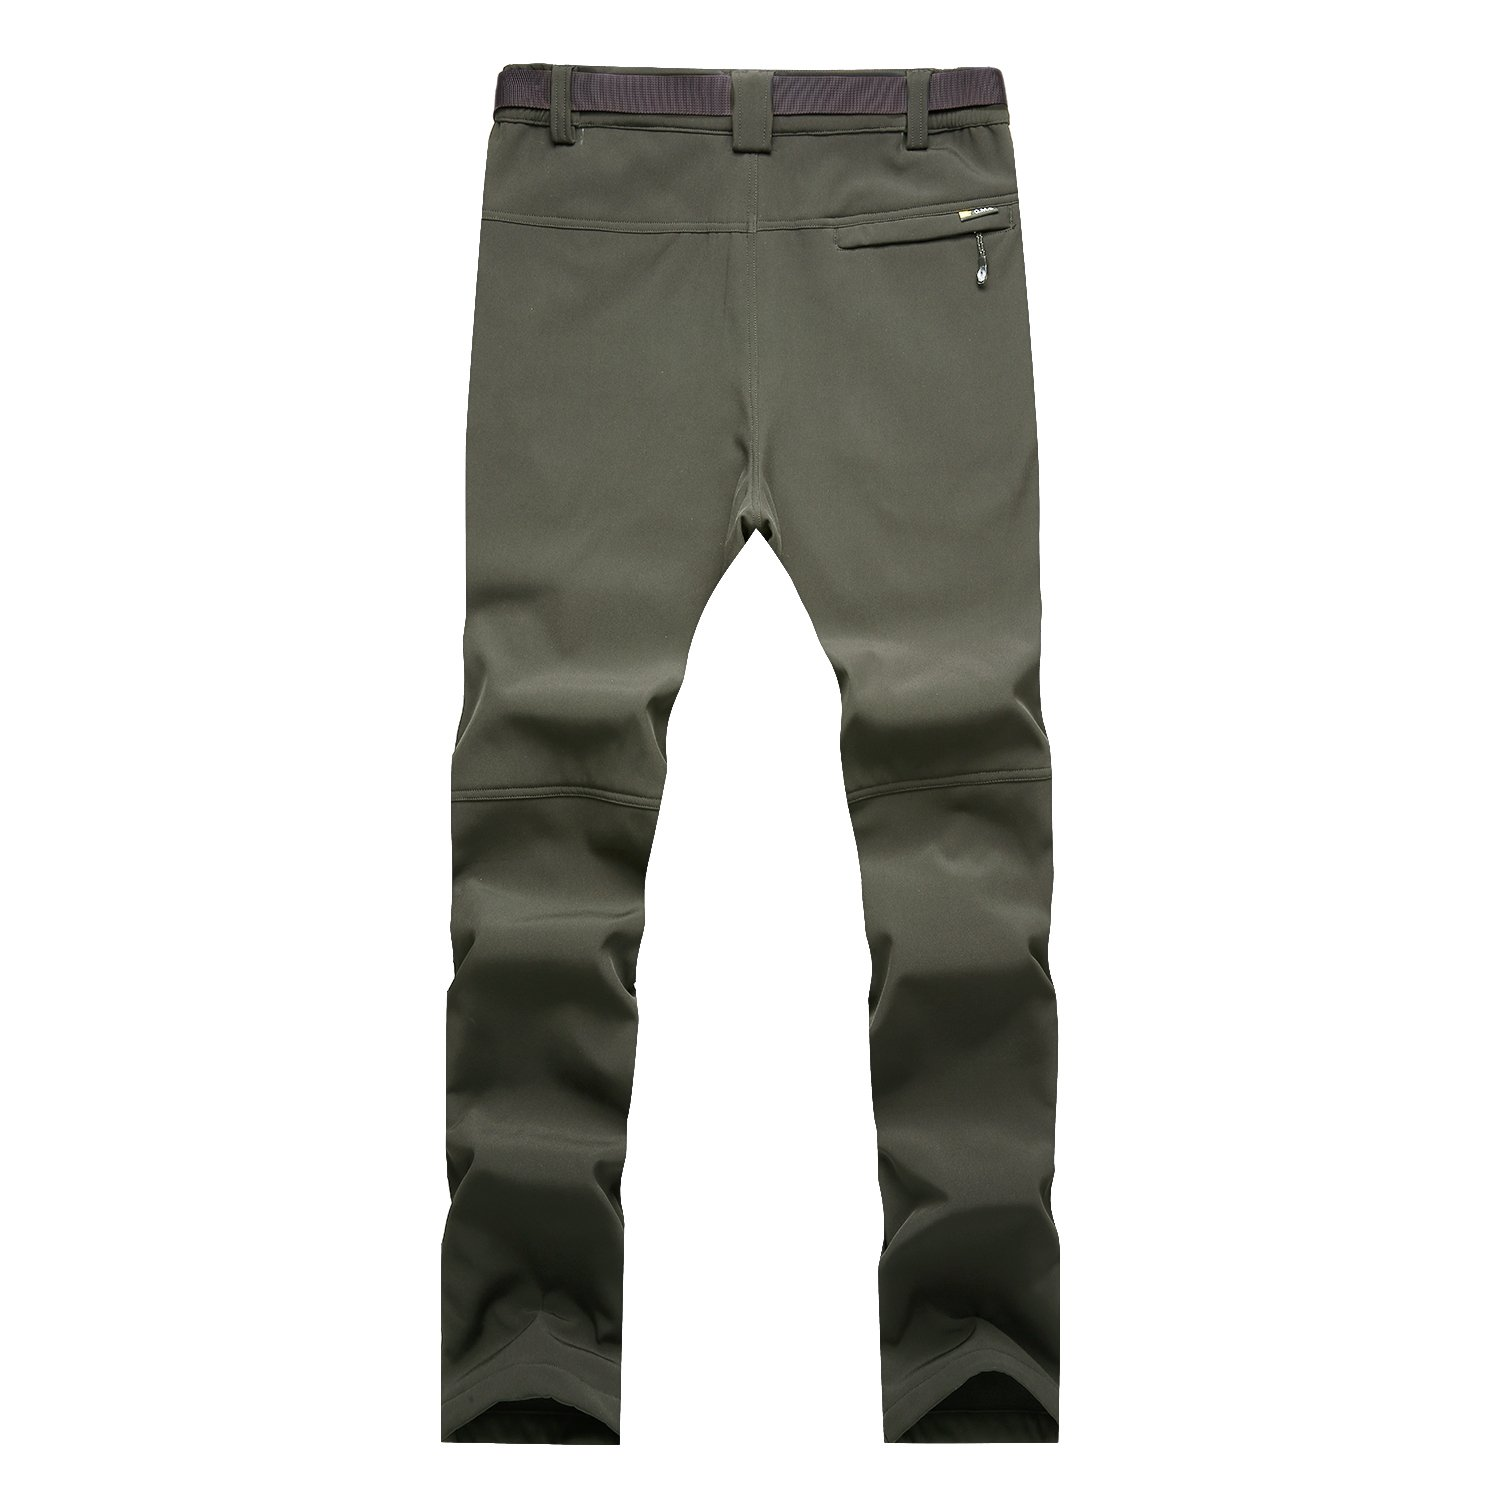 SUKUTU Men/'s Outdoor Breathable Quick Dry Hiking Trousers Fleece Lined Hiking Trousers Warm Stretch Climbing Walking Pants